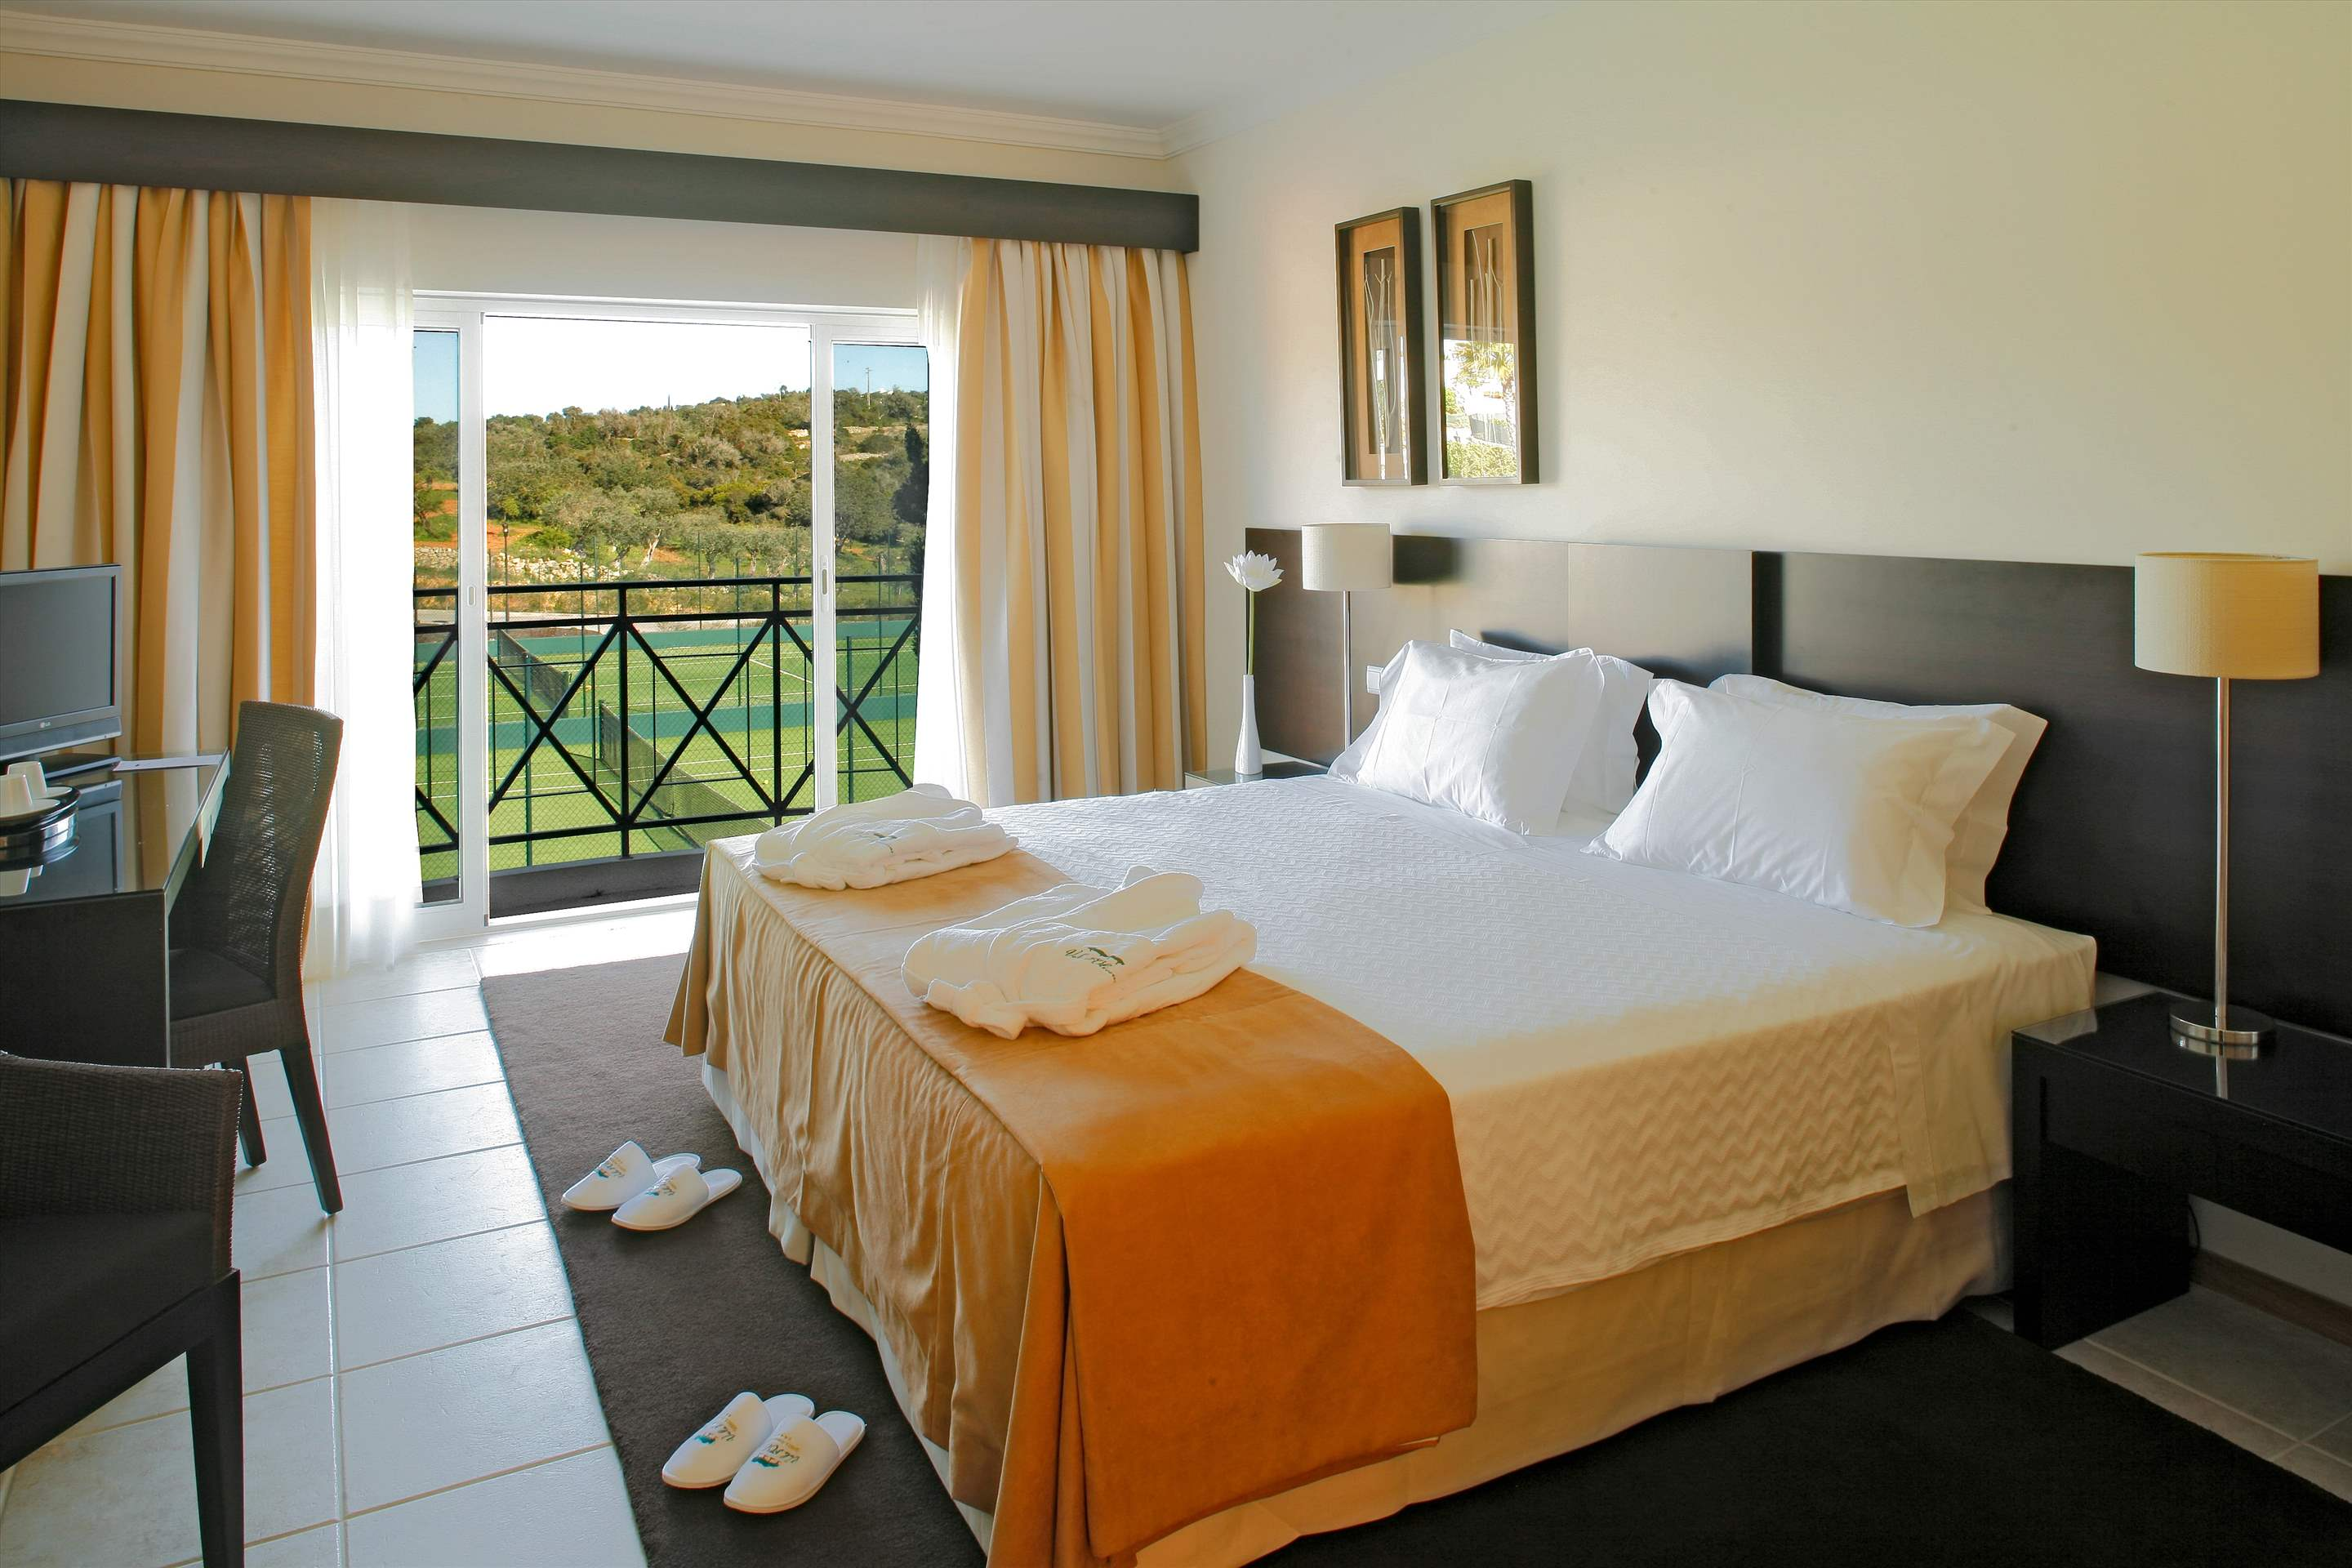 Vale dOliveiras Hotel Double/ Twin Room BB Basis, 1 bedroom hotel in Vale d'Oliveiras Resort & Spa, Algarve Photo #5